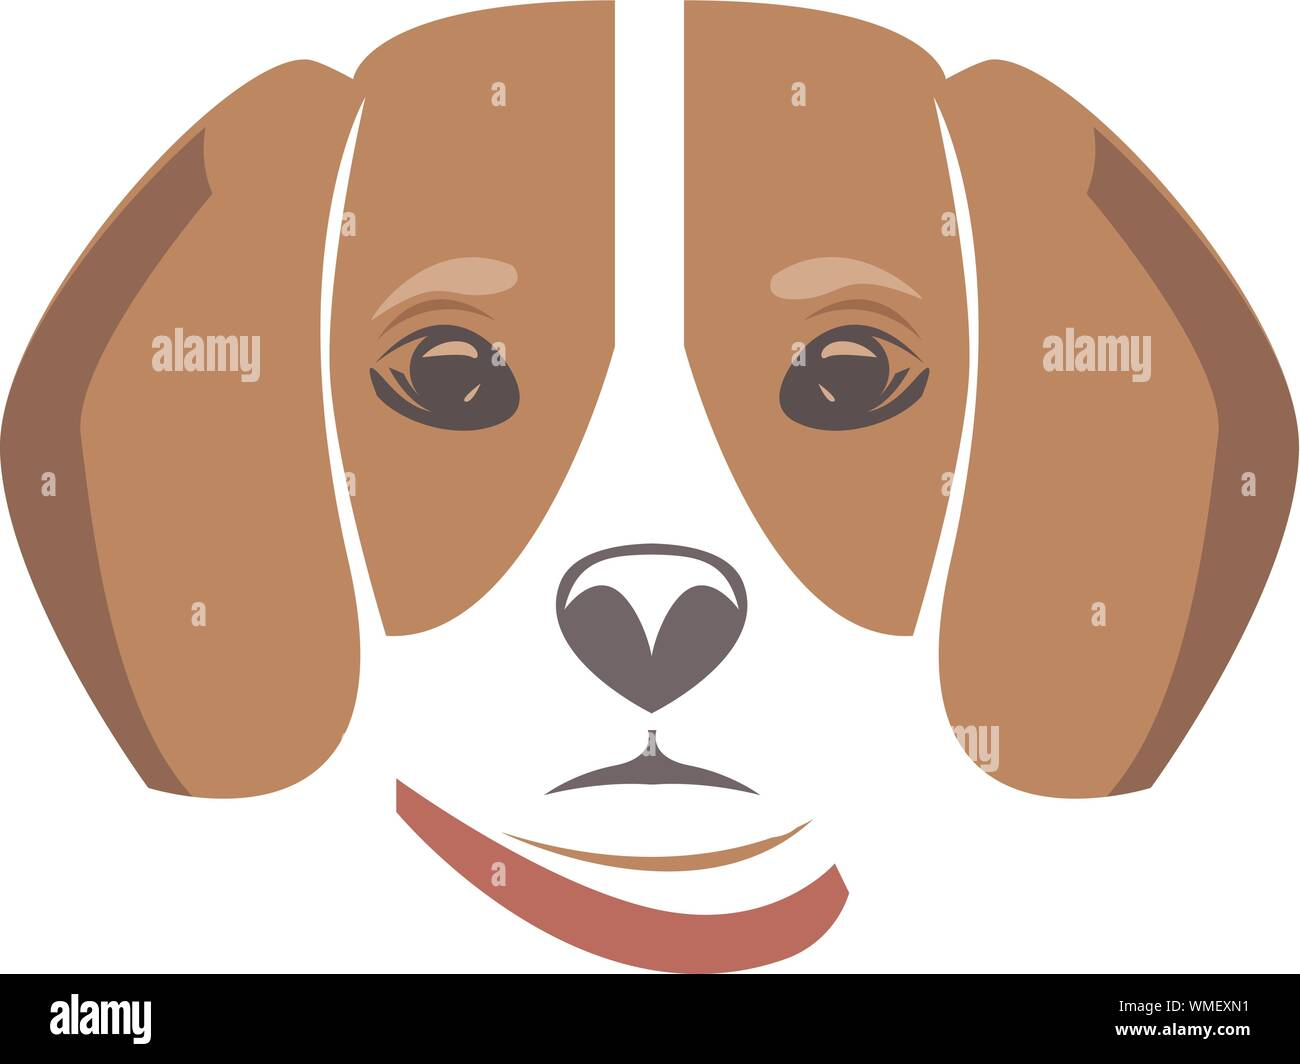 Dog Head Icon Flat Style Cartoon Dog Face Vector Illustration Isolated On White Silhouette Simple Animal Logotype Concept Logo Design Template Stock Vector Image Art Alamy